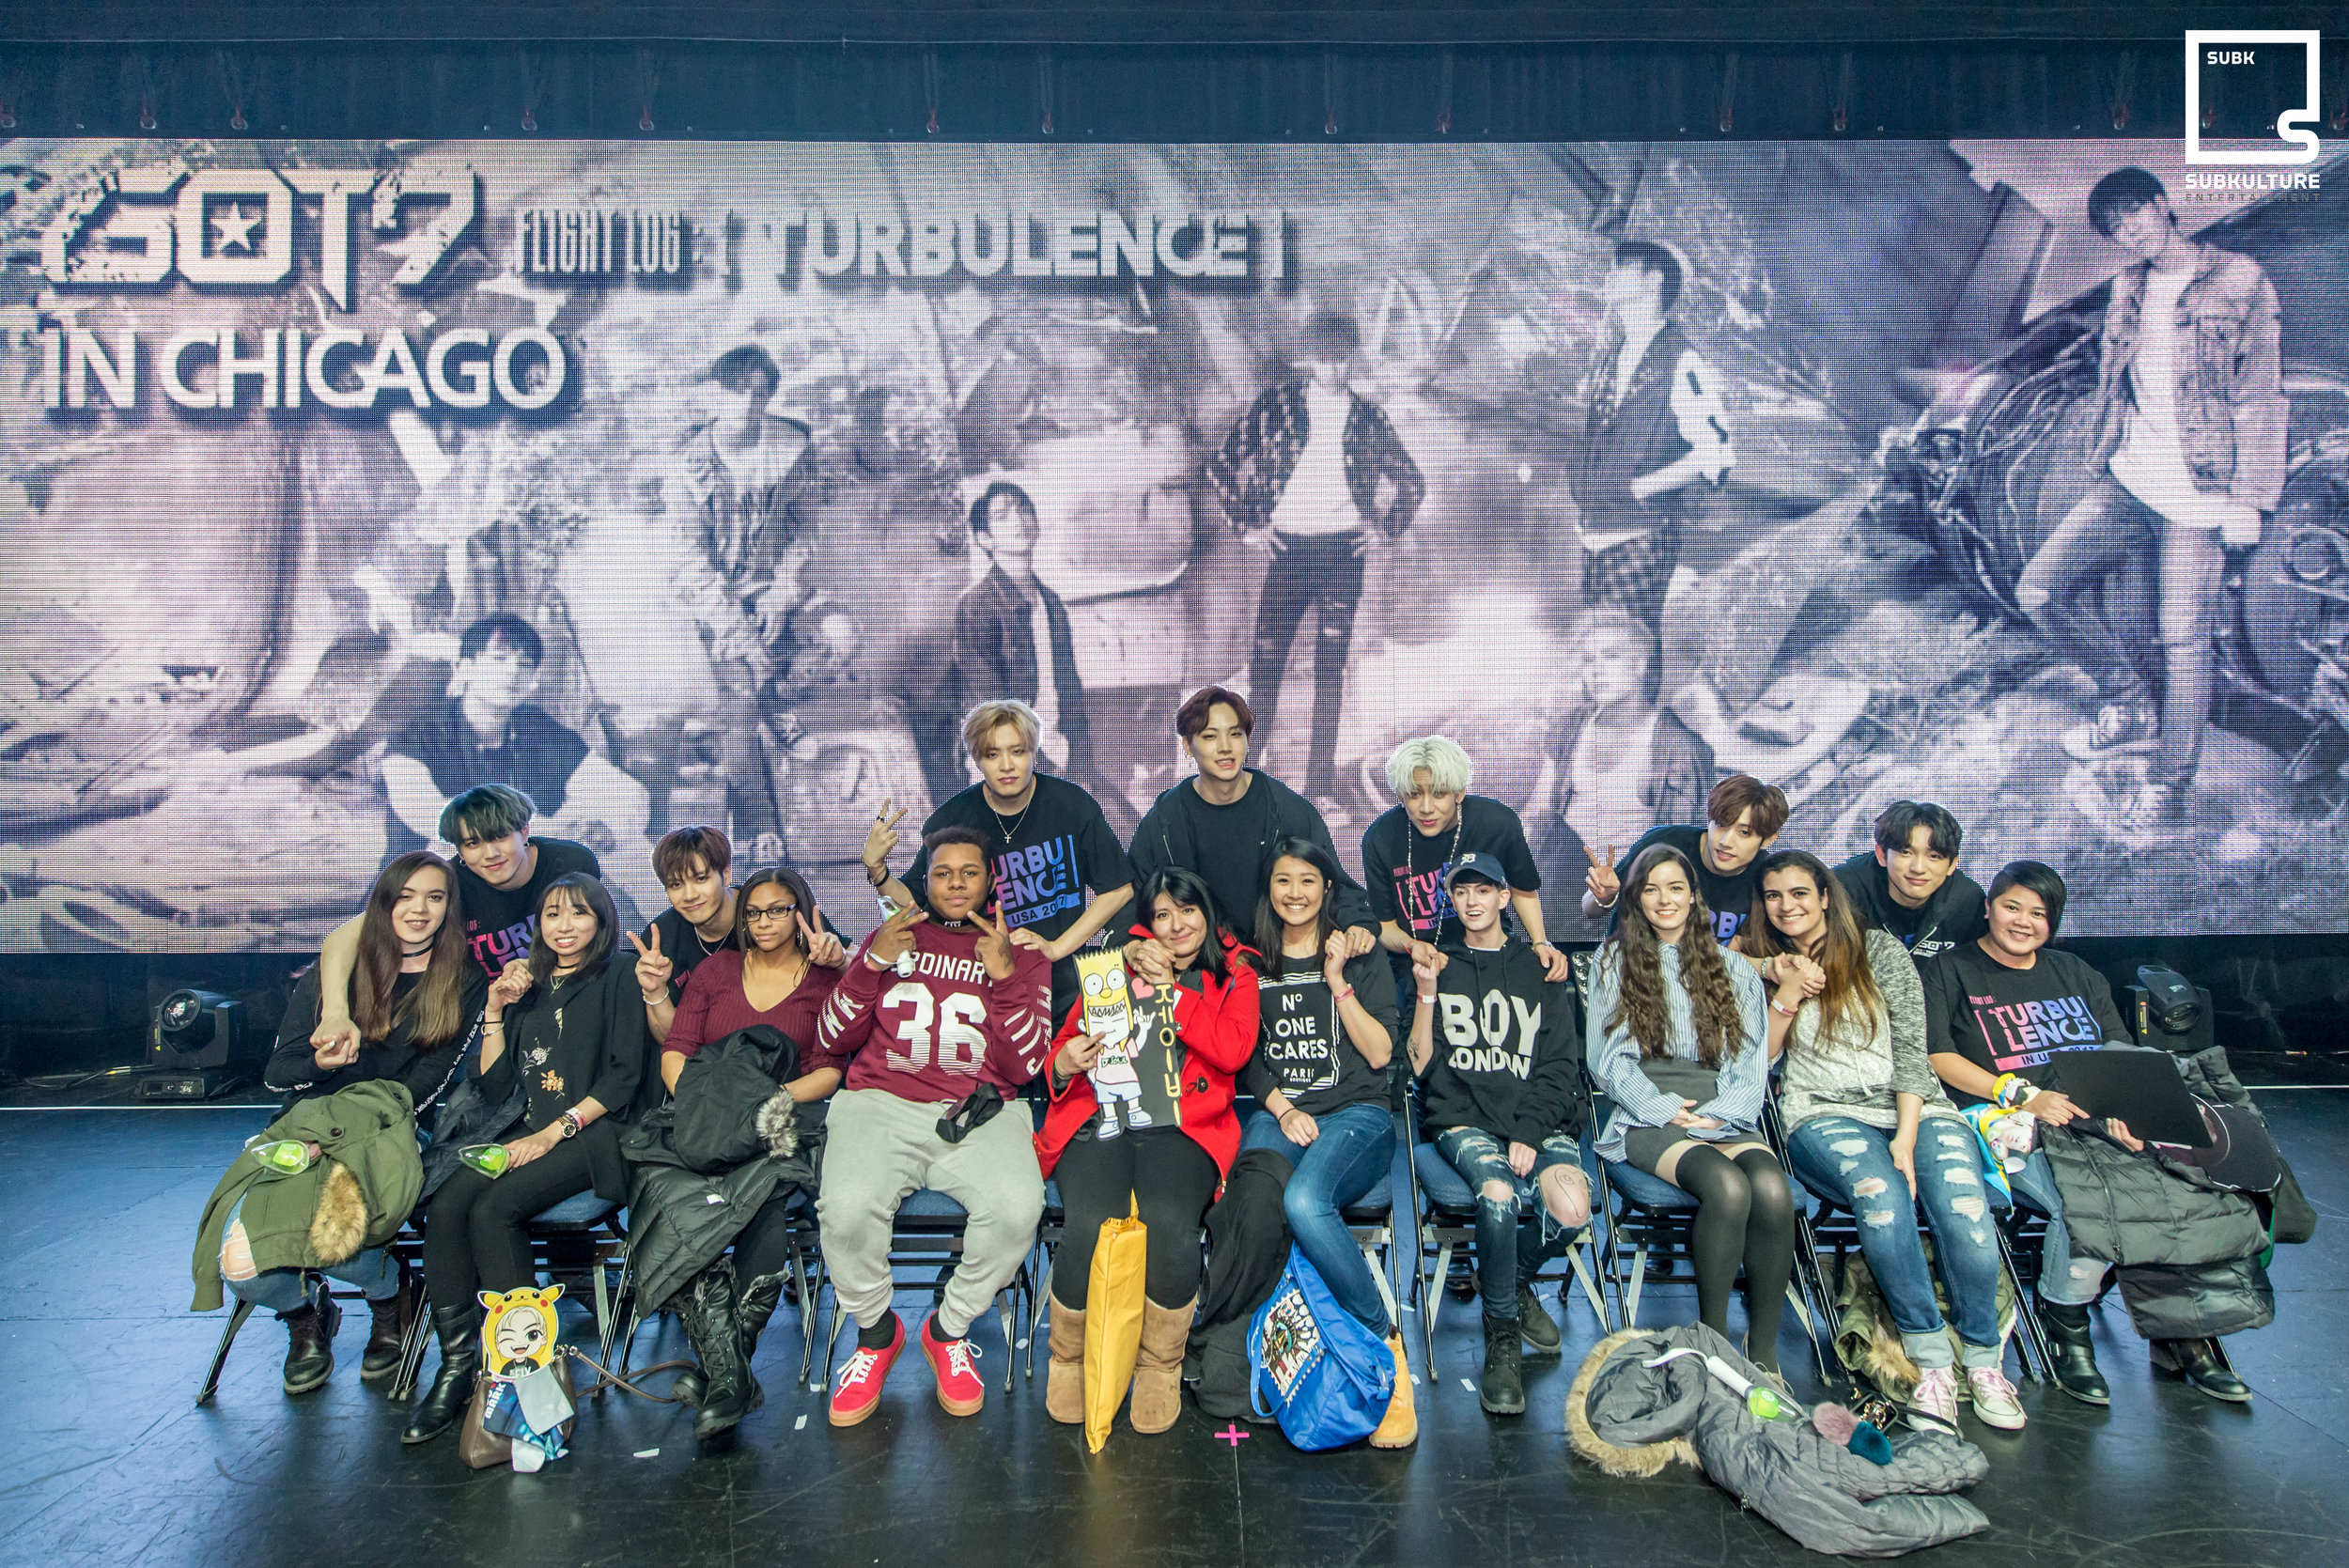 GOT7 Fan Photo Chicago Rosemont Theatre 2017 SubKulture Entertainment-3234 copy.jpg